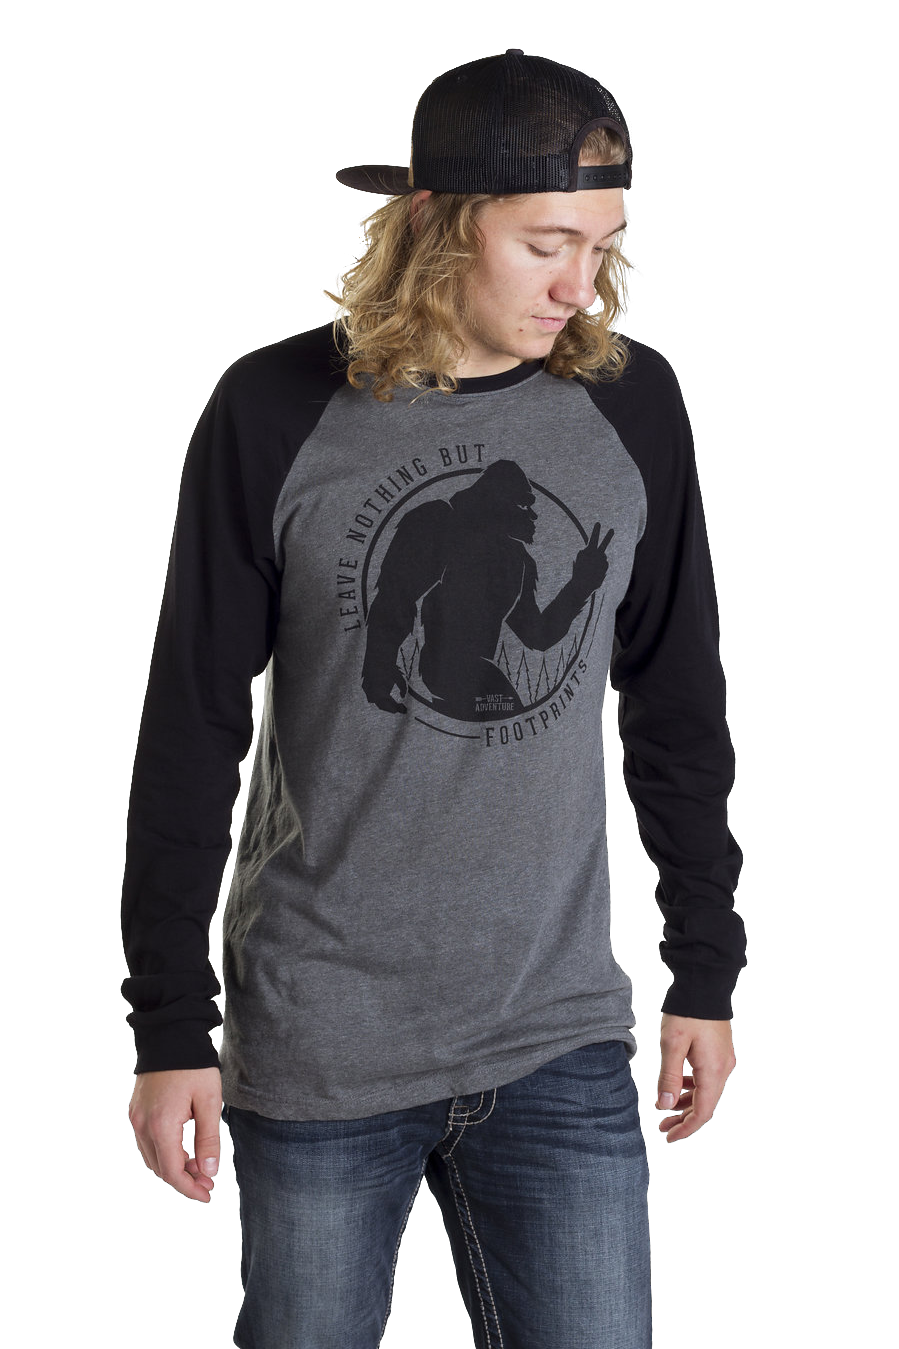 Leave No Trace Long Sleeve